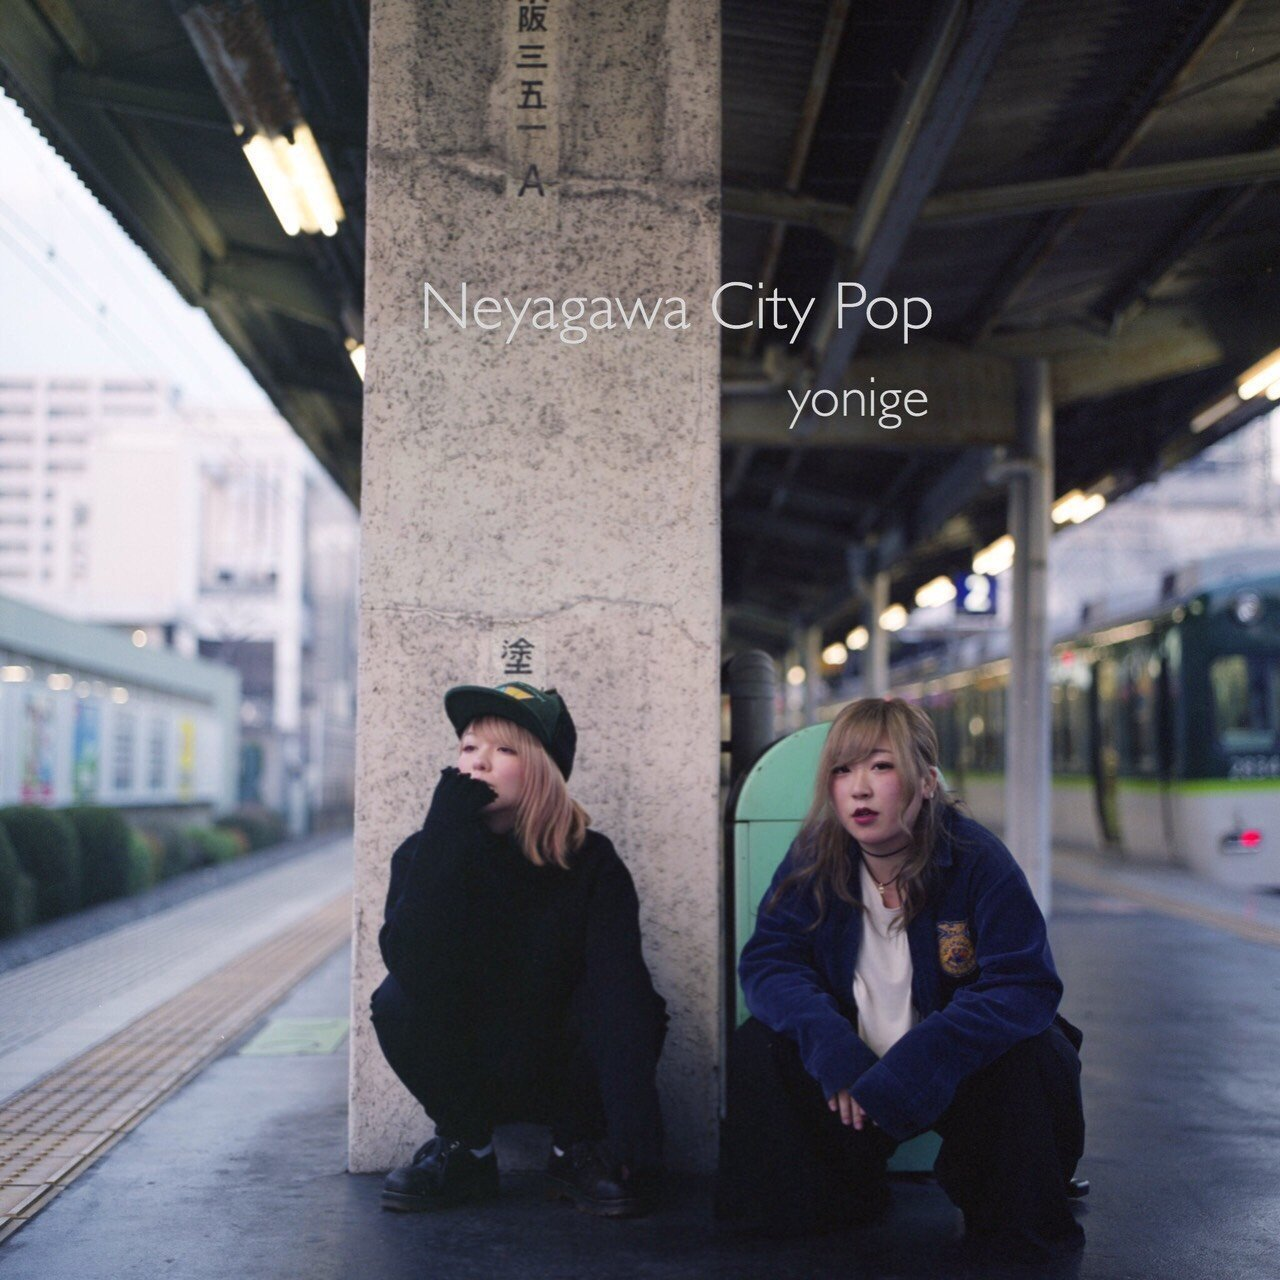 yonige『Neyagawa City Pop』